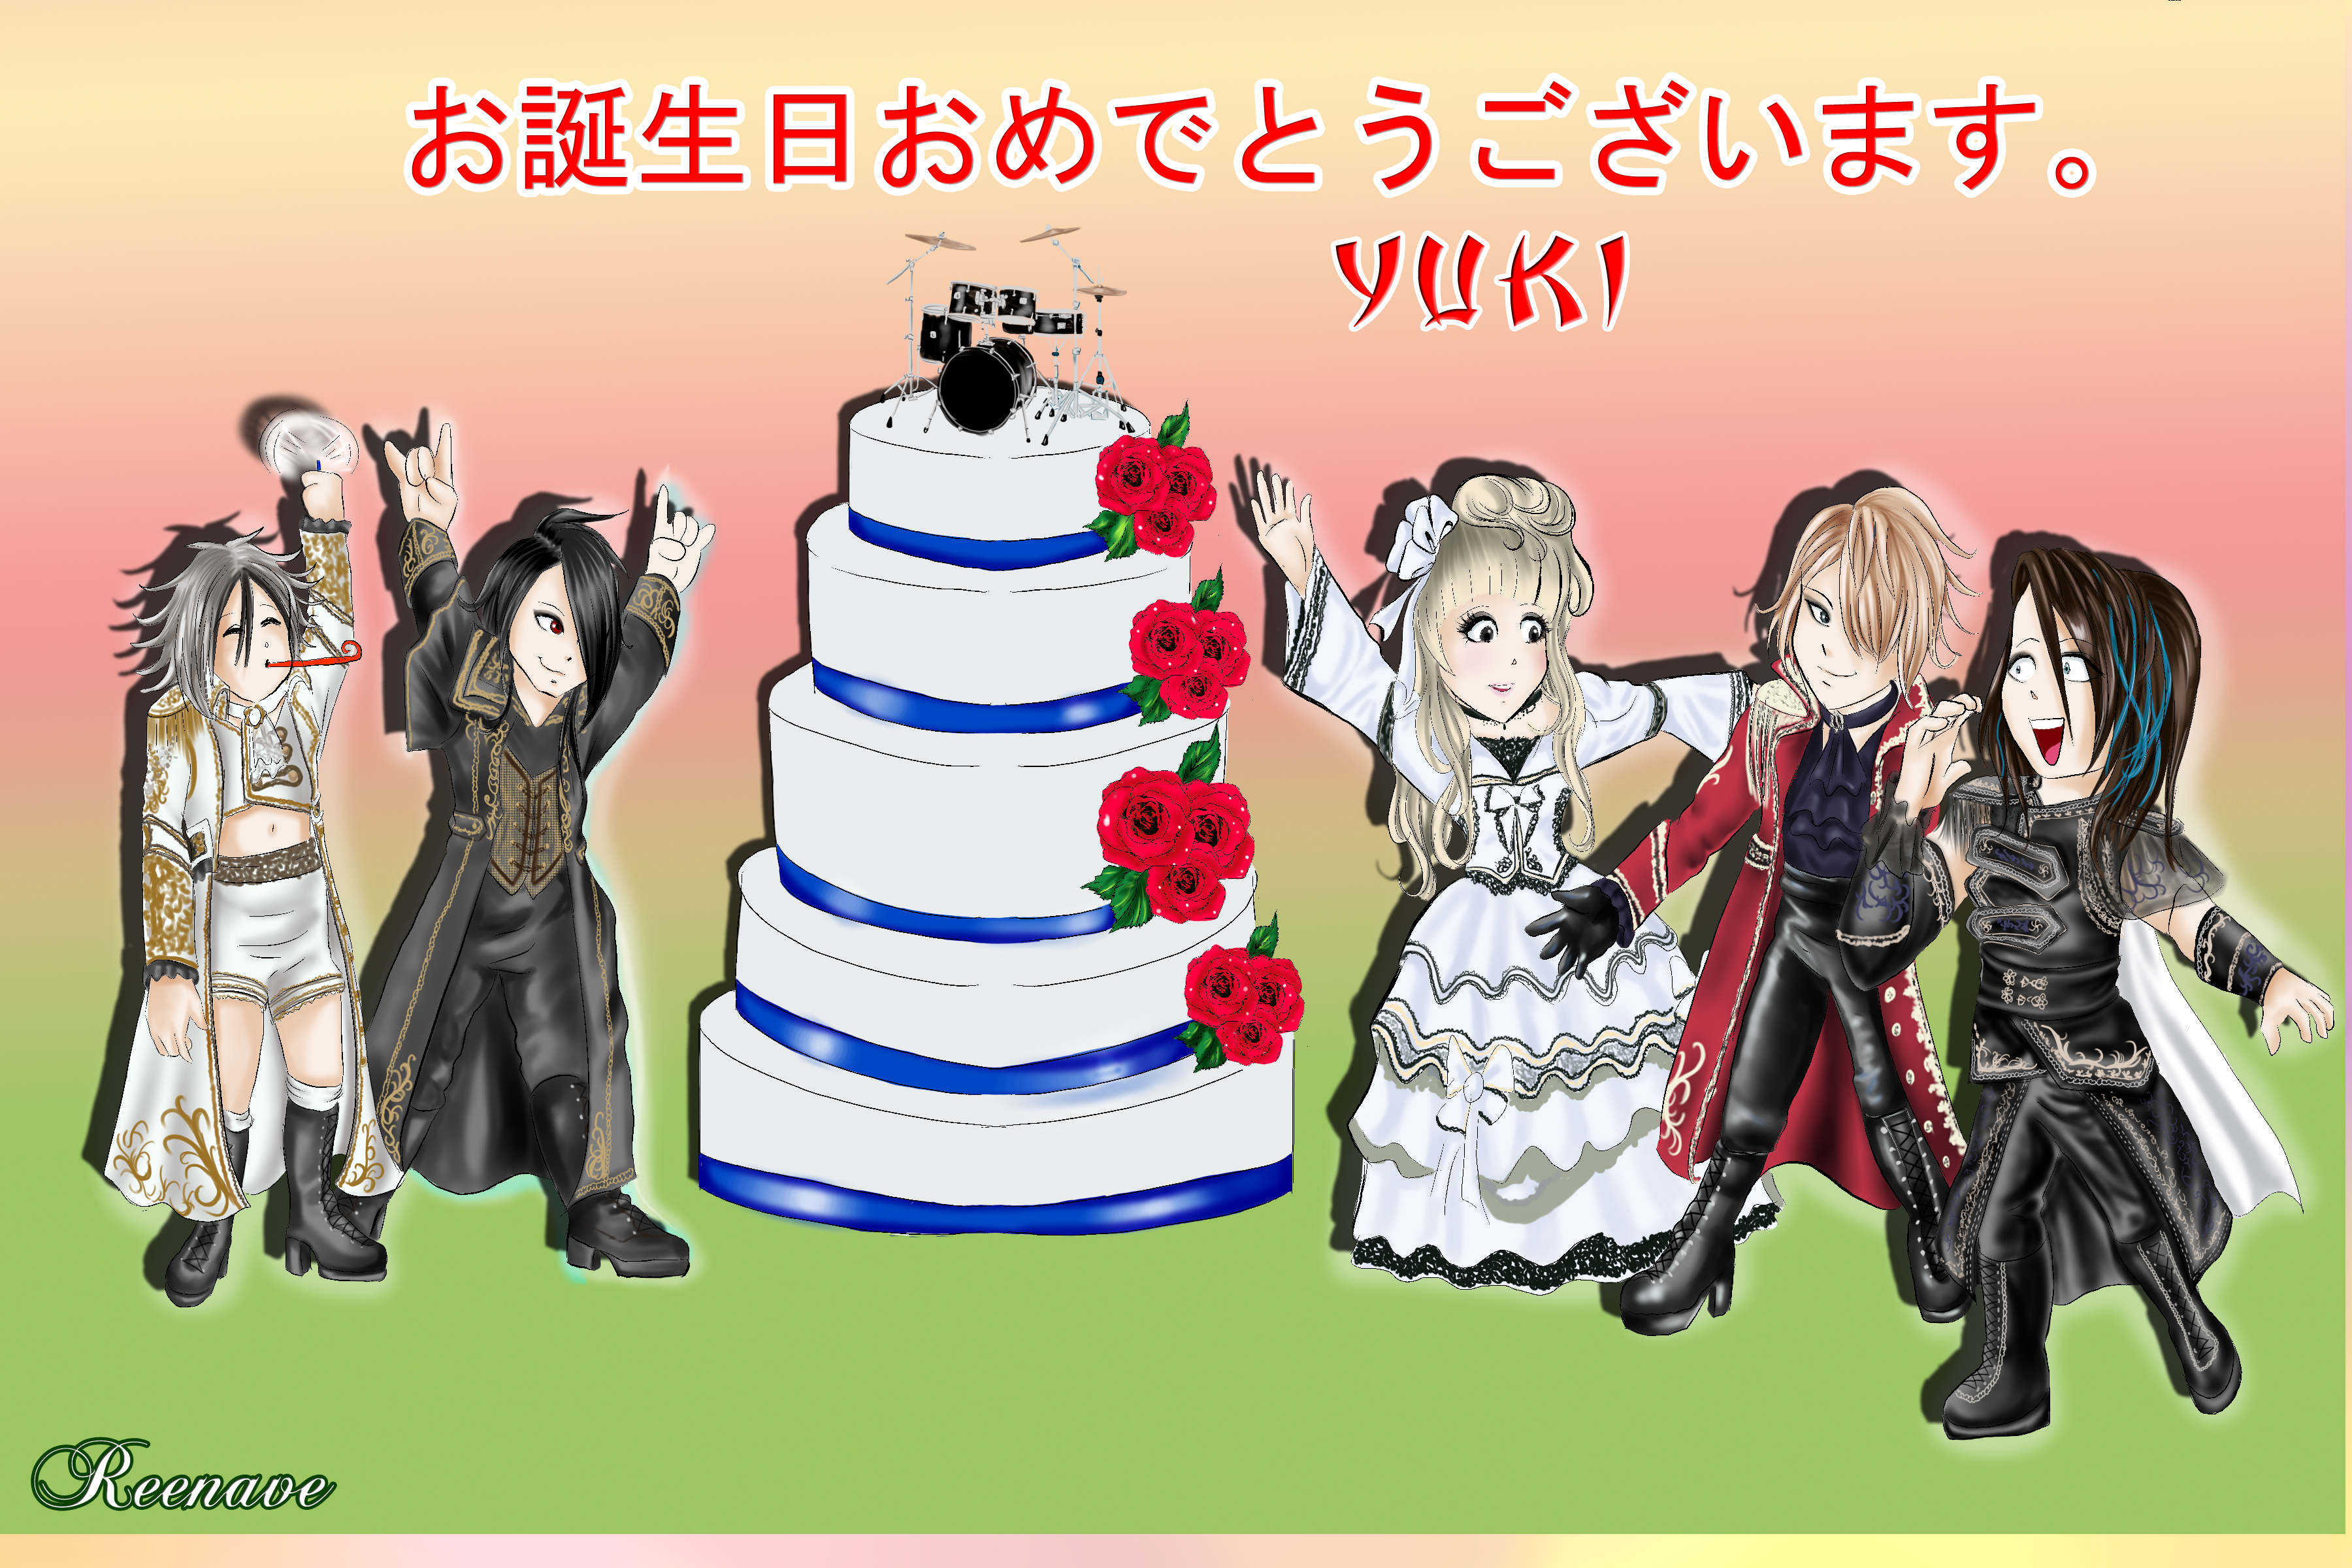 Yuki Birthday Final by Reenave